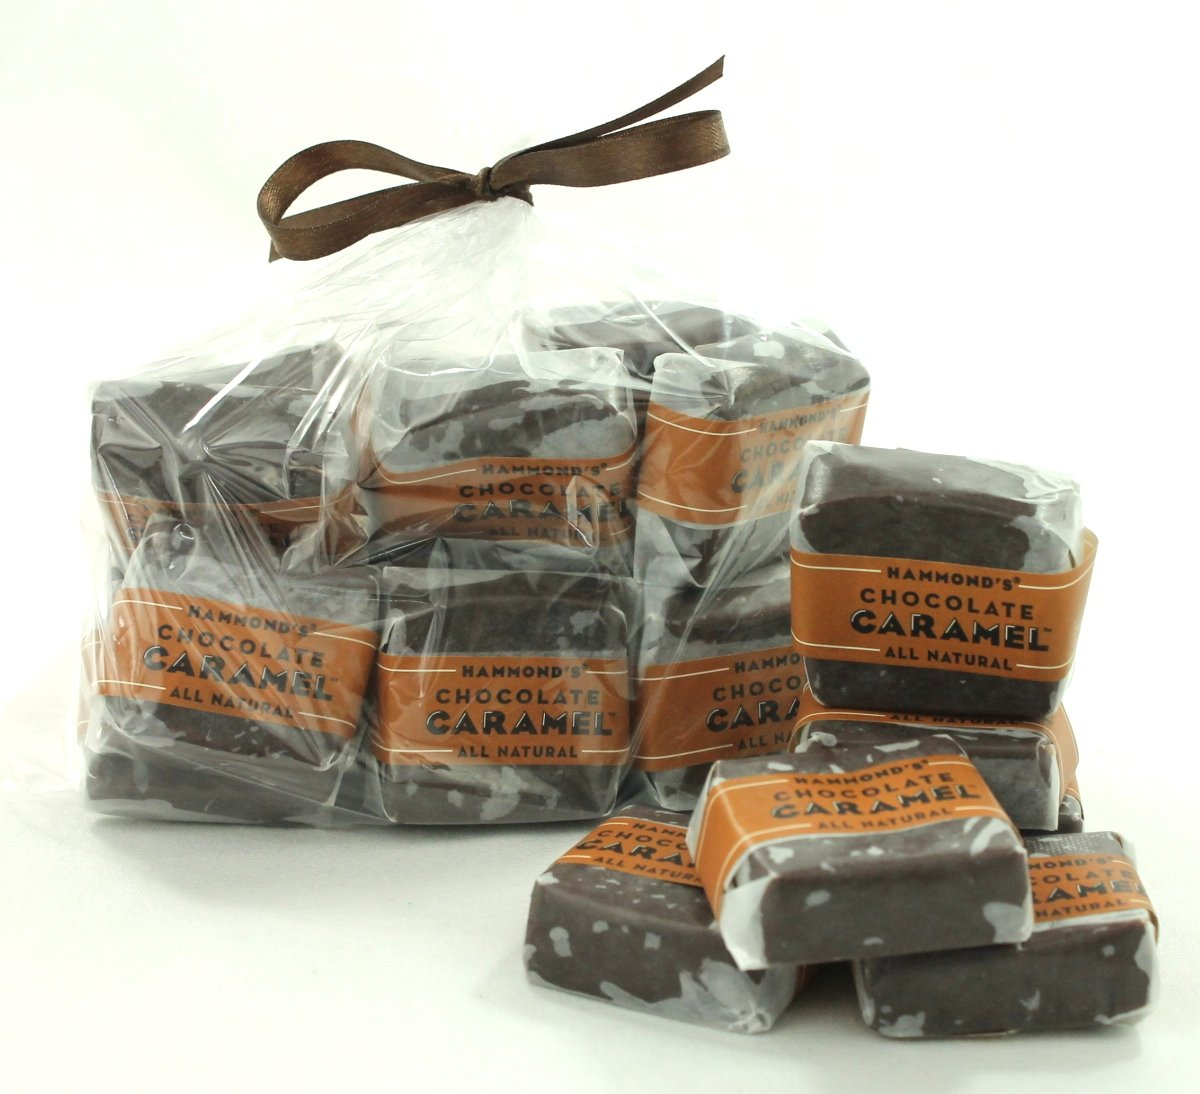 16 Pieces Chocolate Caramels, Wrapped, 12 Ounce Bag, Hammonds Candy, Hand Made